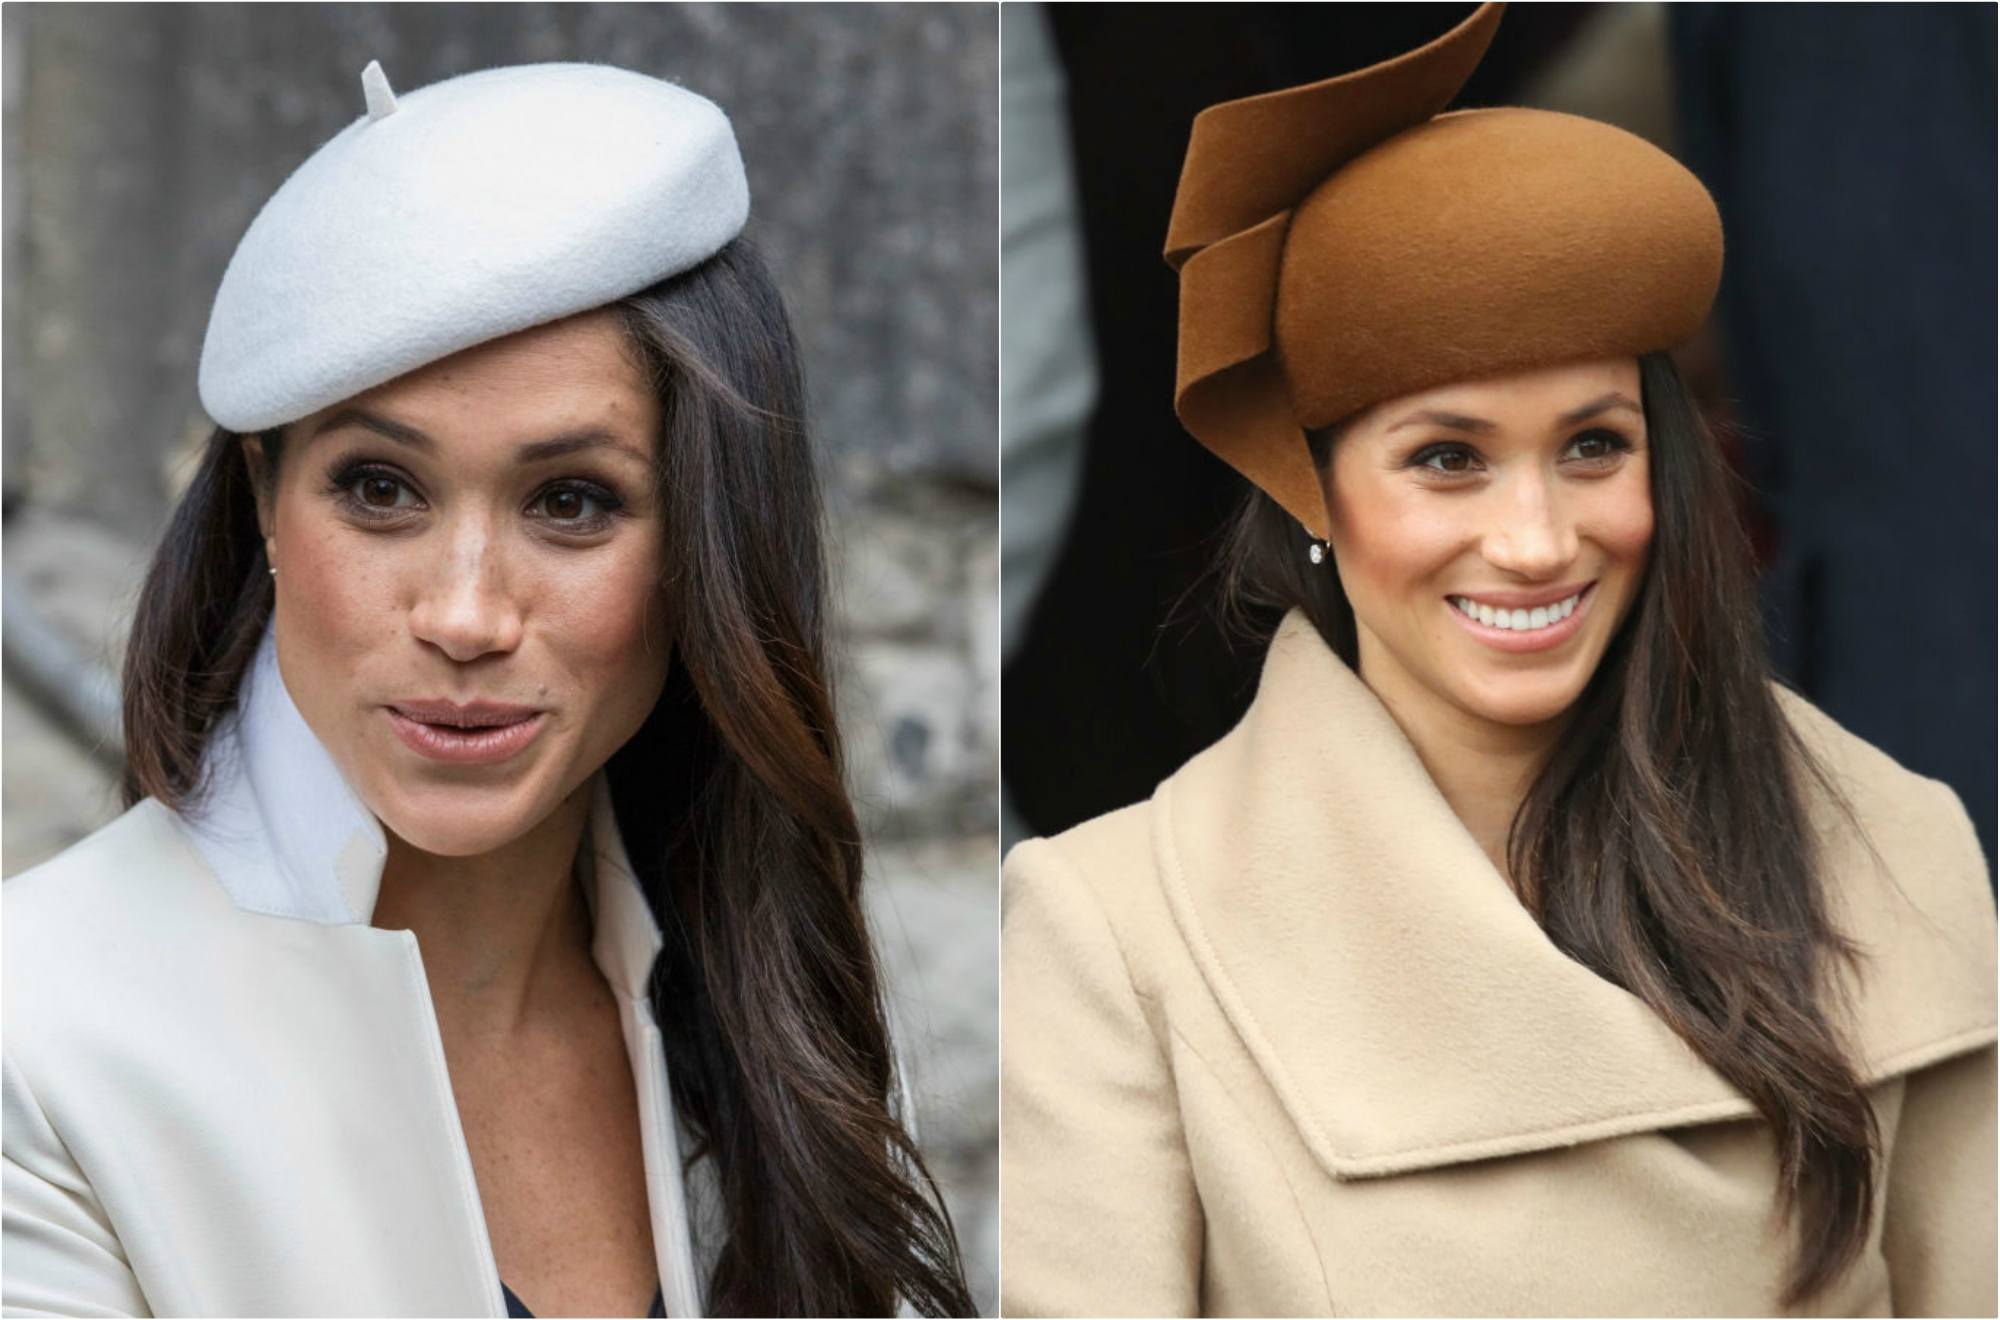 Meghan Markle hats